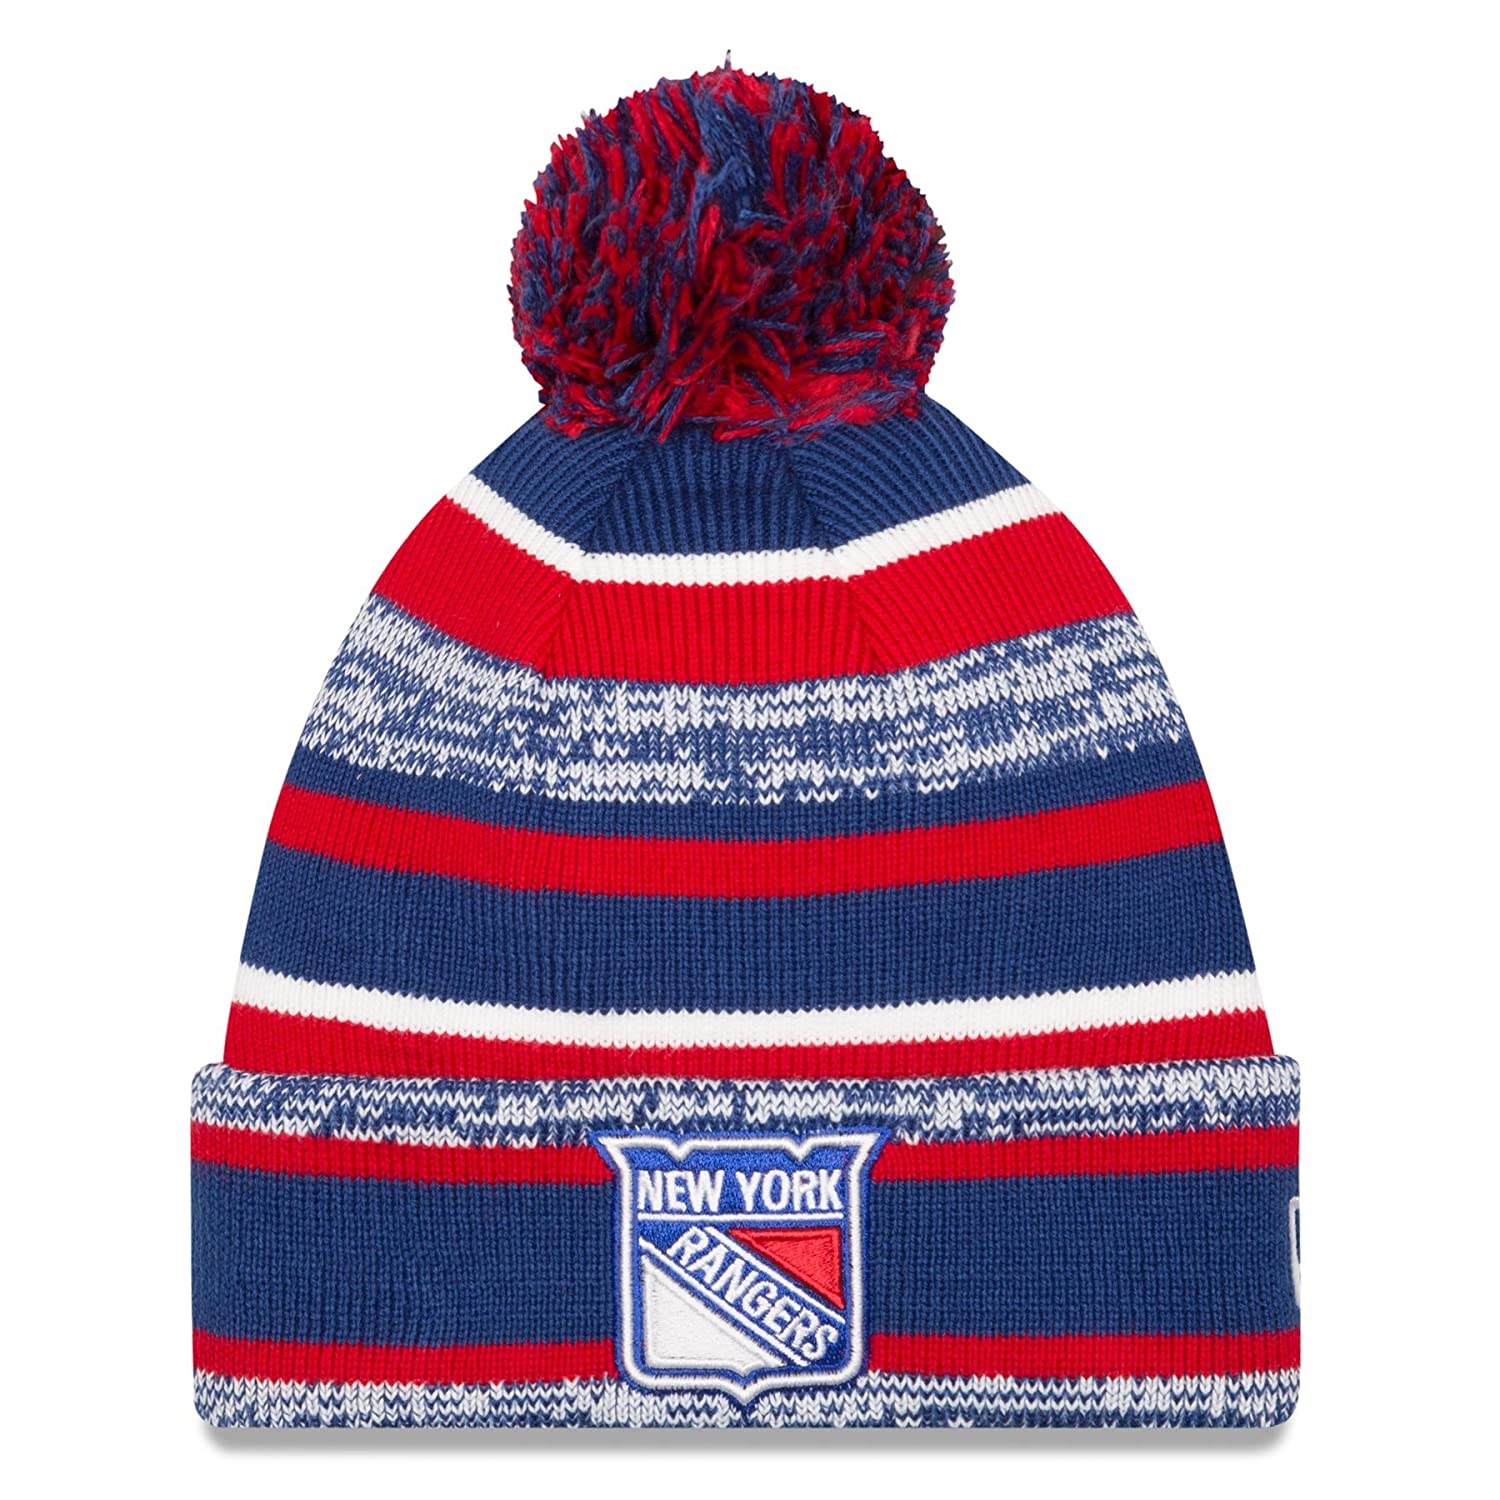 890c3ab8699 ... norway amazon nhl new era sport cuffed knit hat with pom osfm boston  bruins sports outdoors